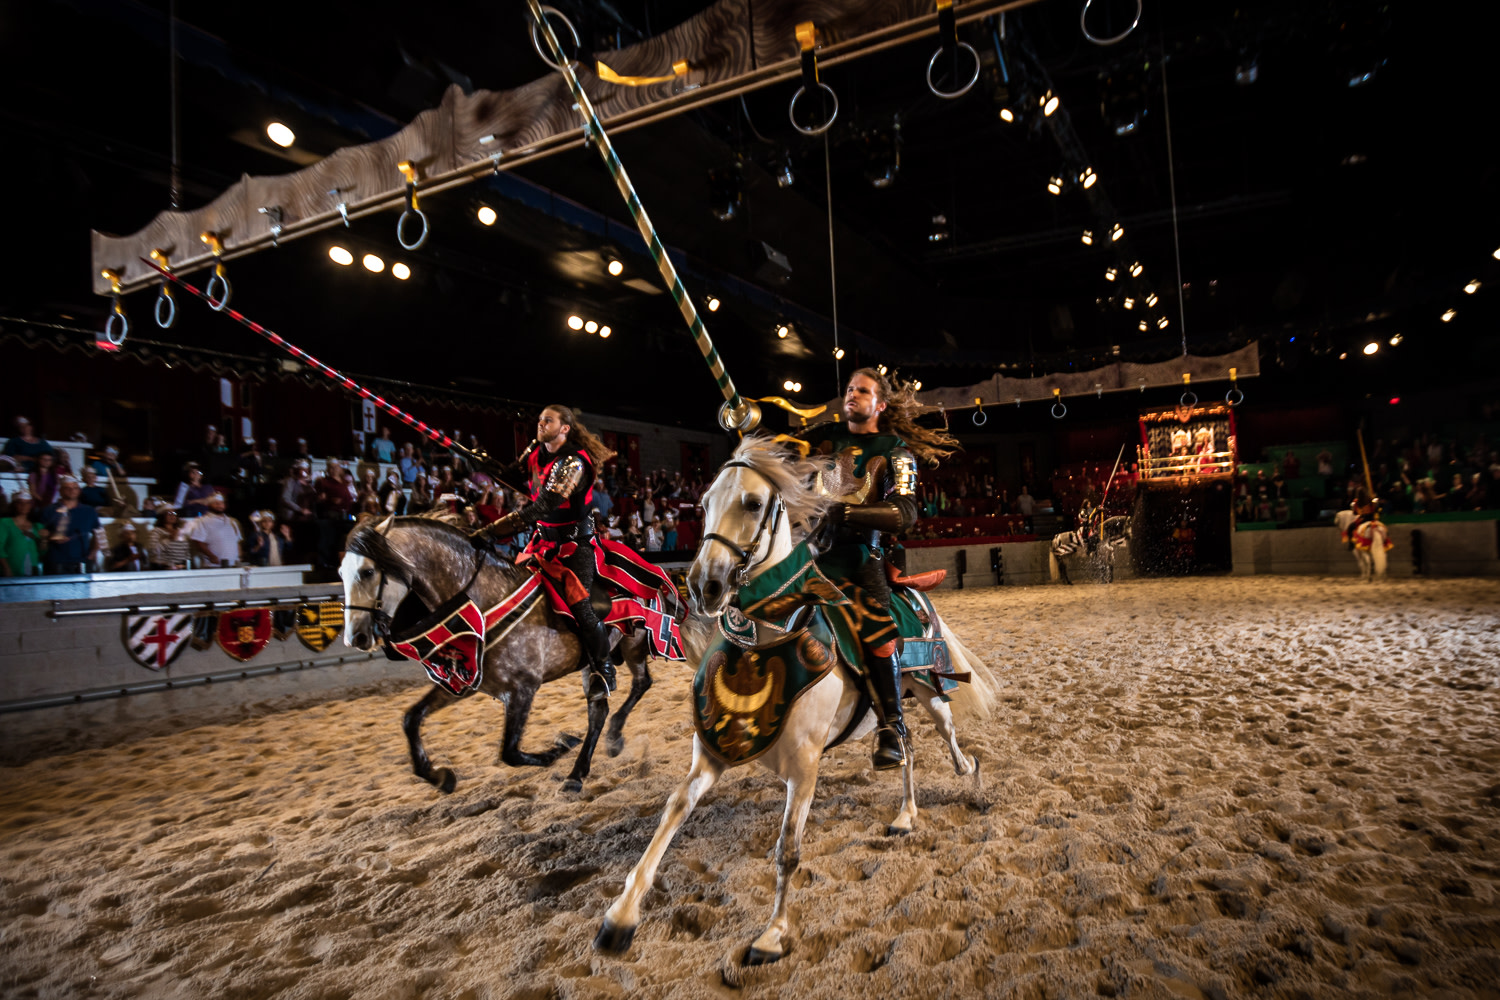 Medieval Times Dinner & Tournament Lawrenceville